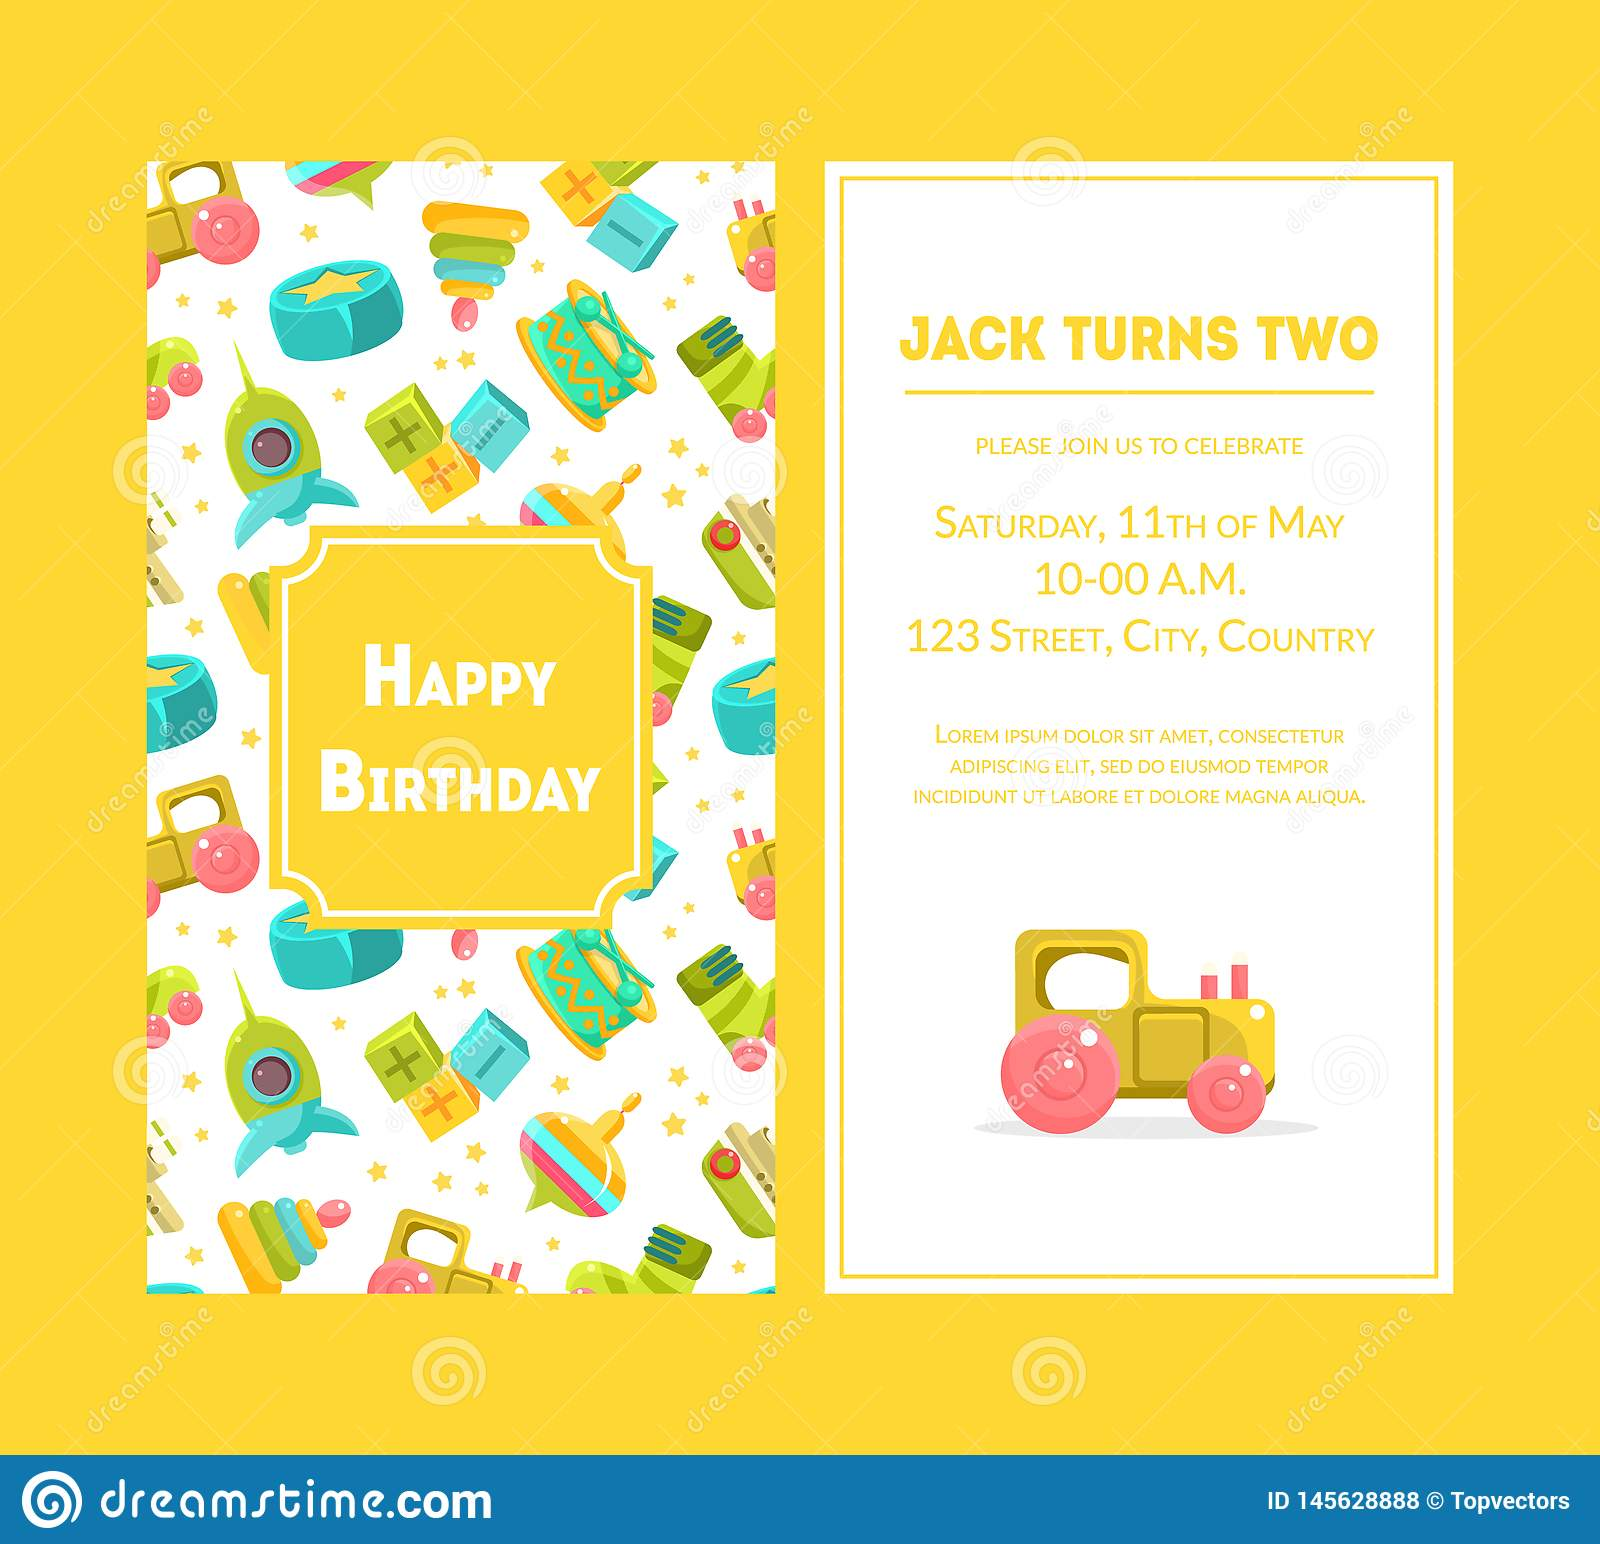 Happy Birthday Greeting Card, Yellow Party Invitation